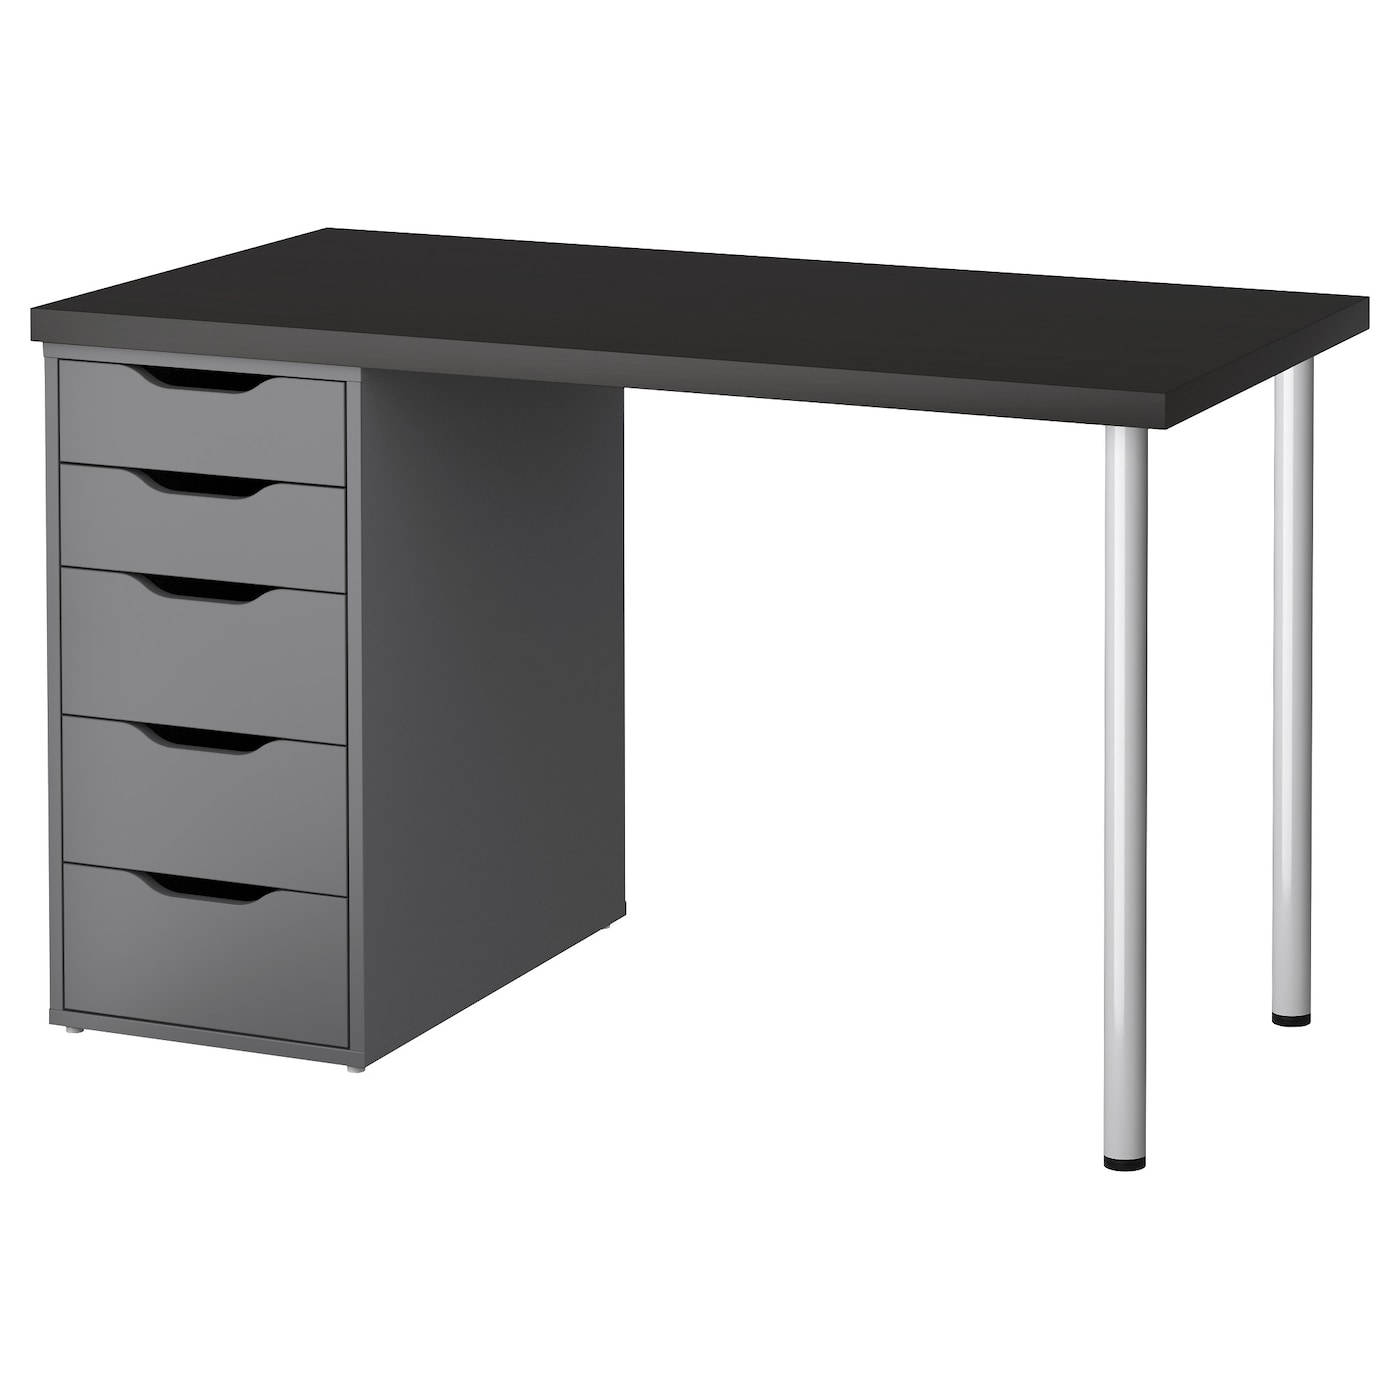 linnmon alex table black brown grey 120x60 cm ikea. Black Bedroom Furniture Sets. Home Design Ideas